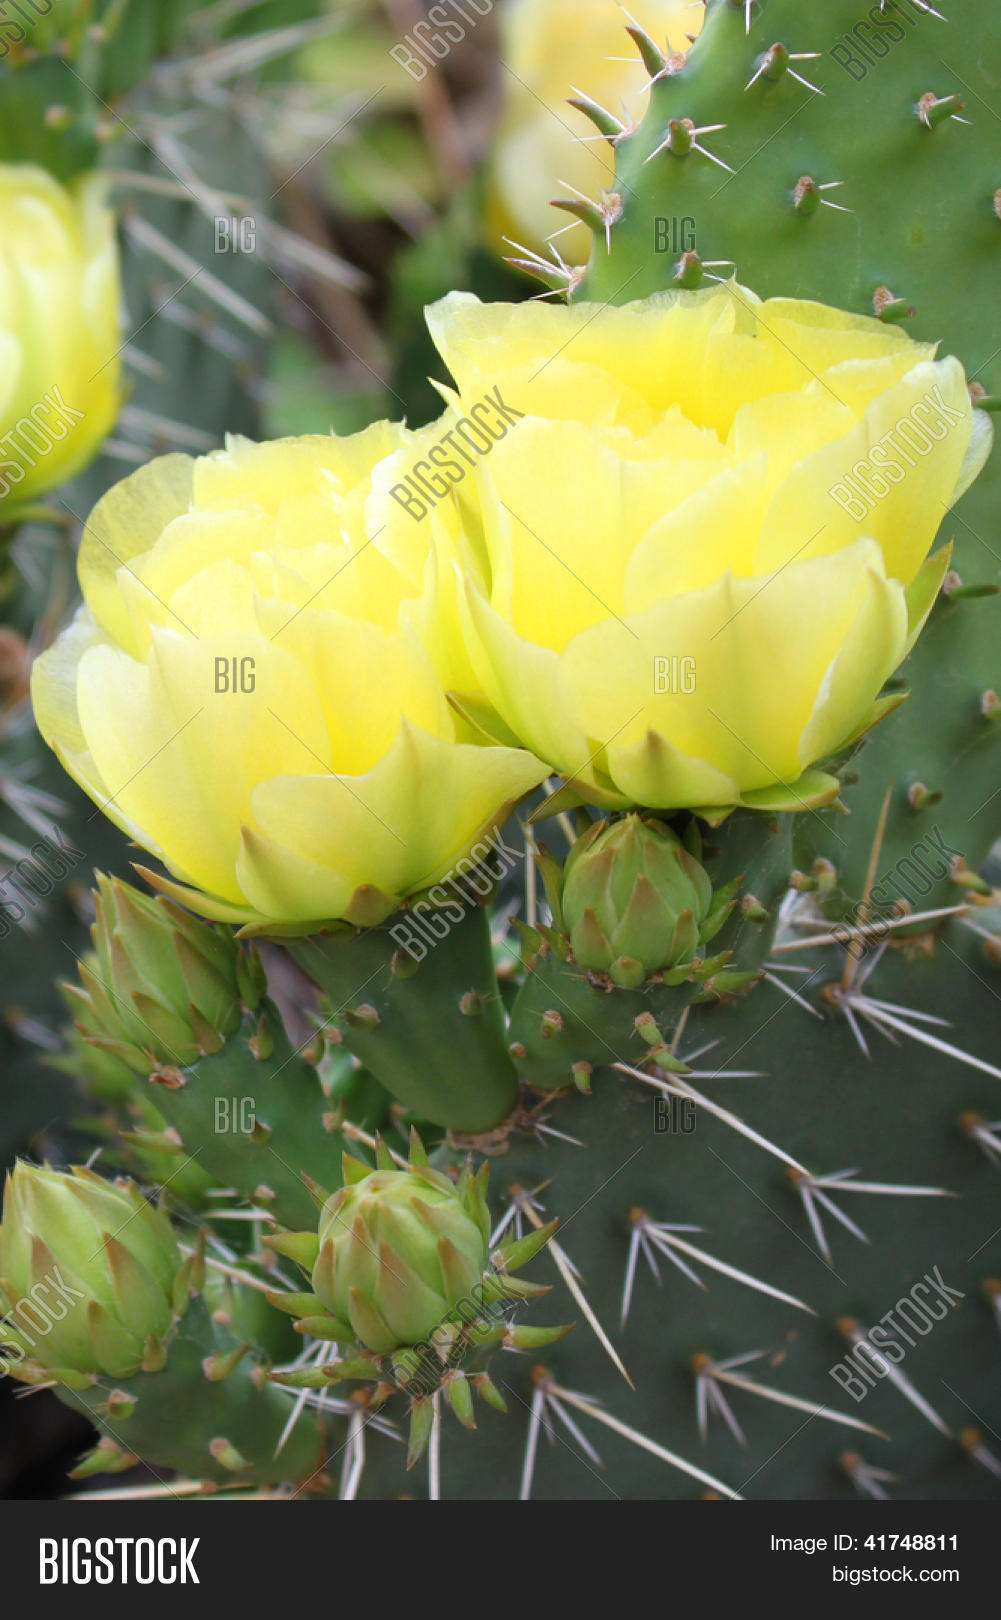 Blooming Prickly Pear Image Photo Free Trial Bigstock